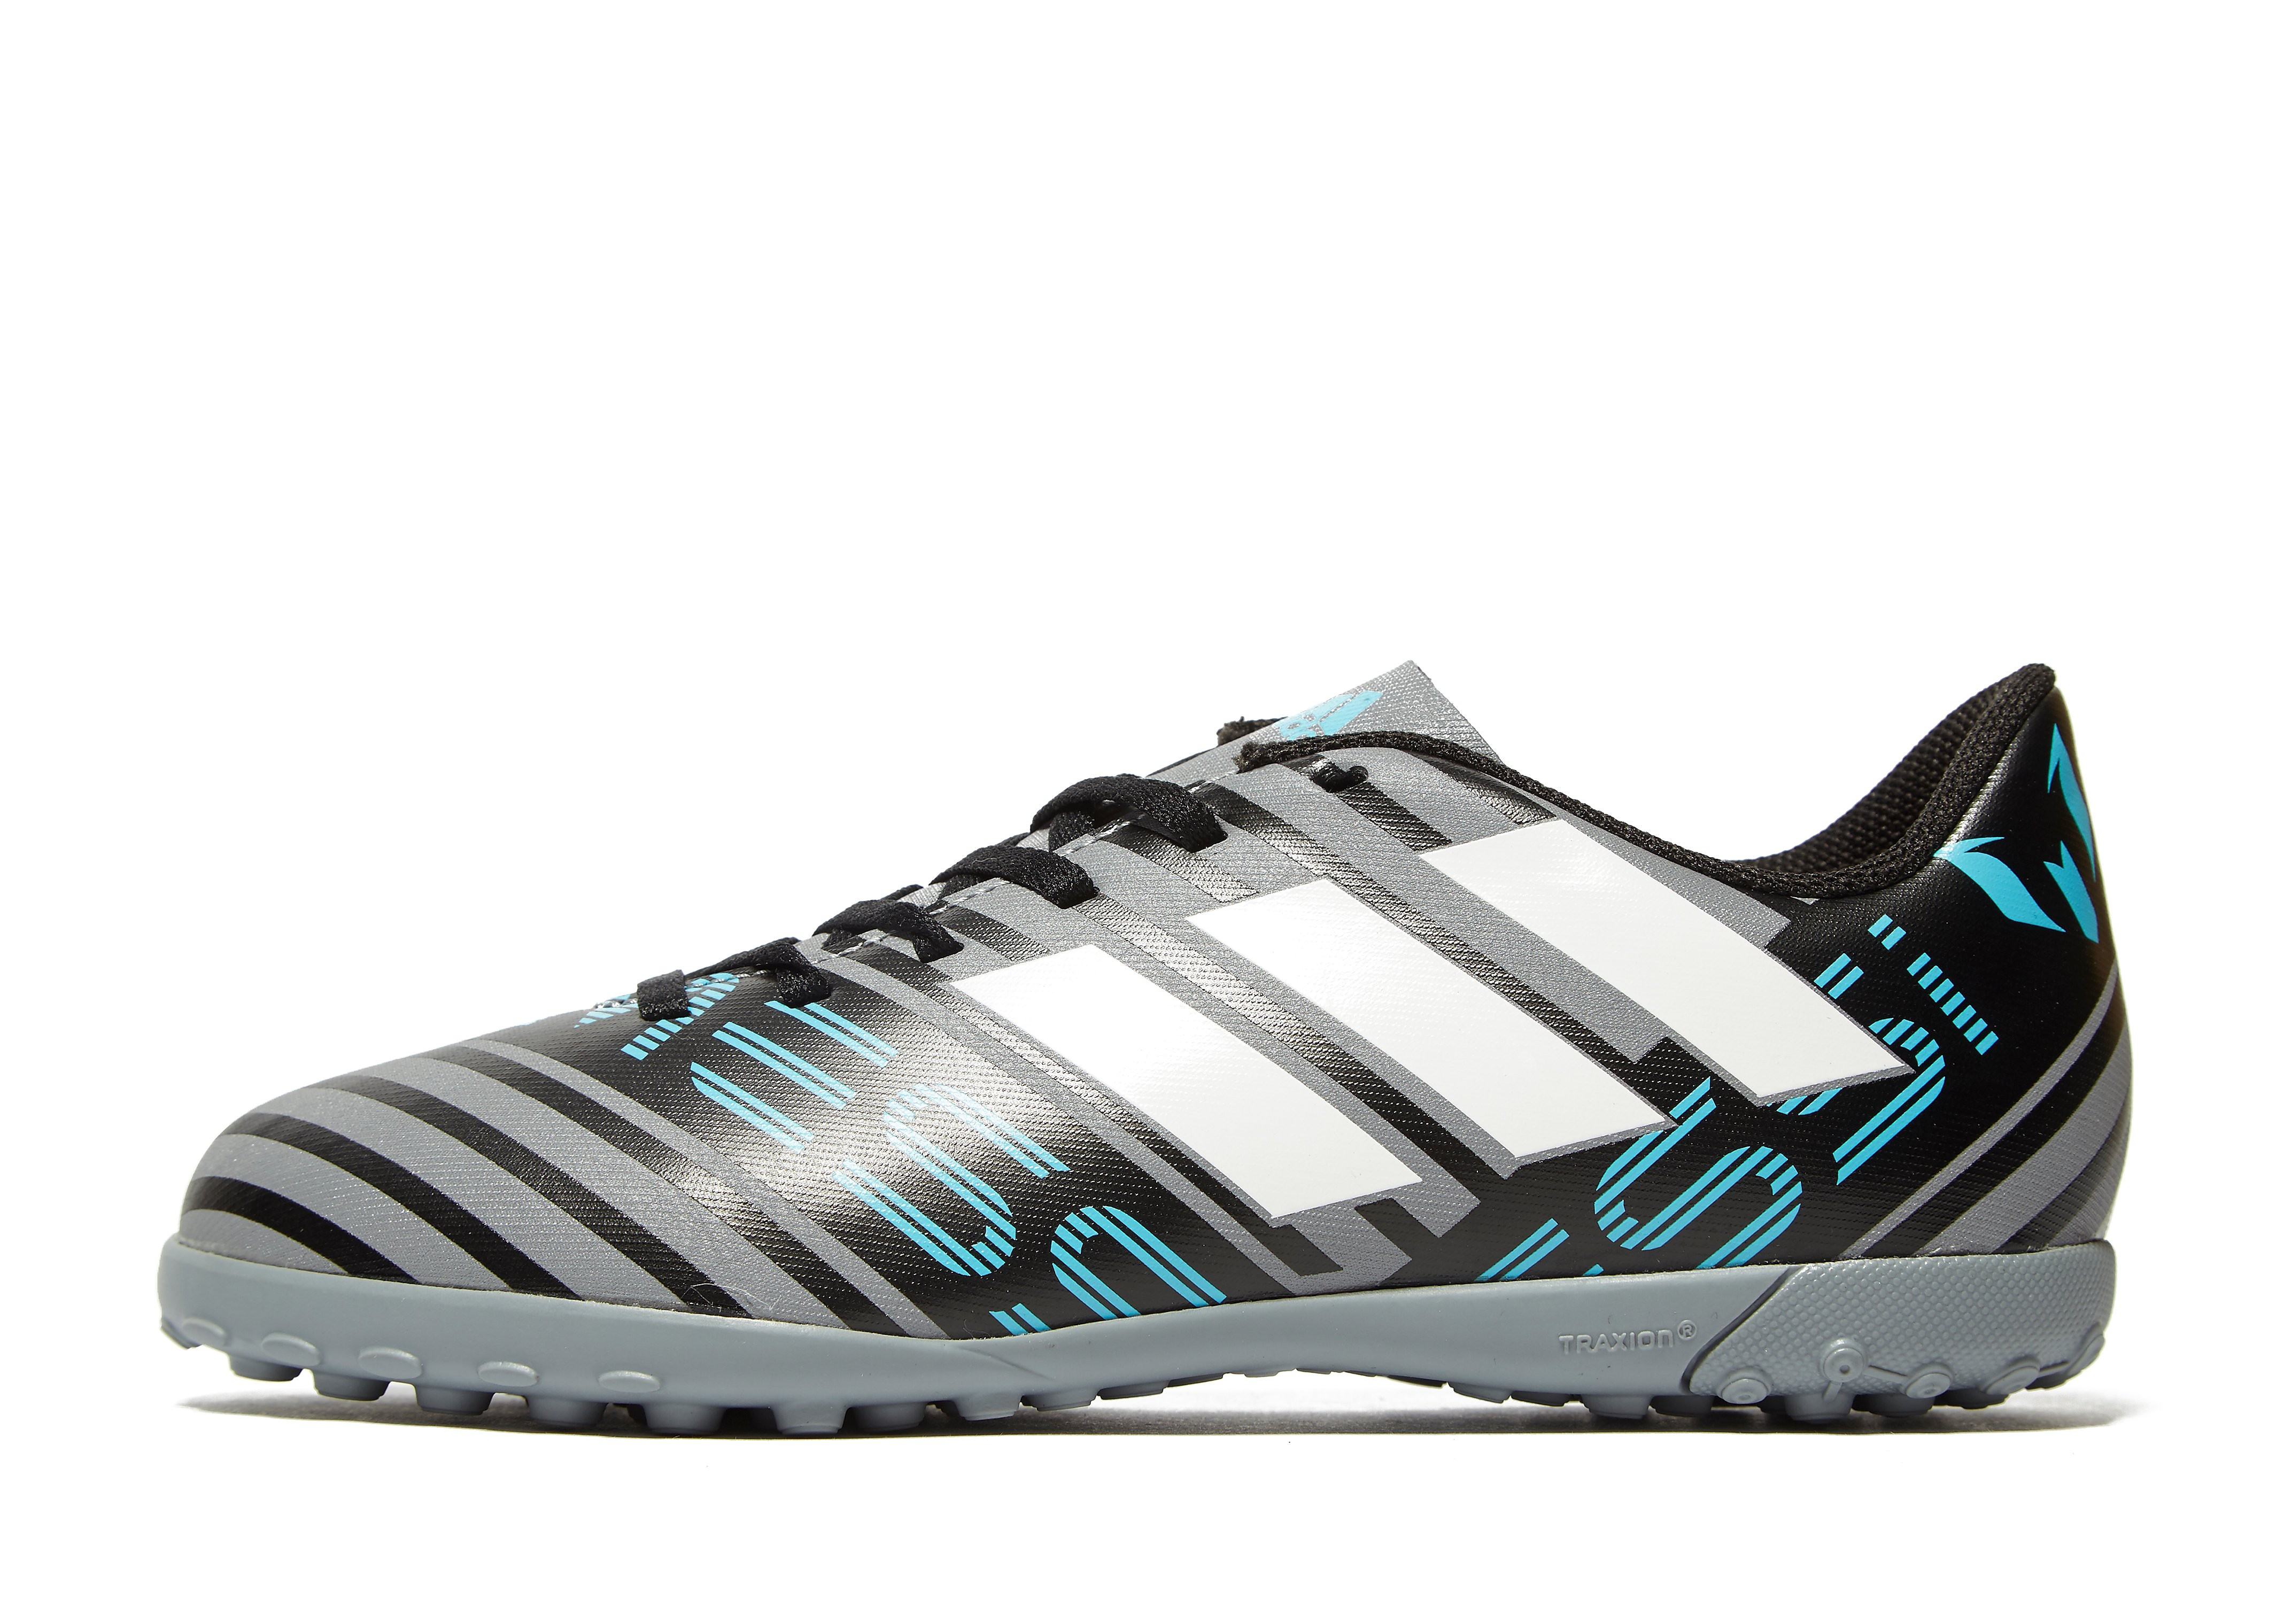 adidas Cold Blooded Nemeziz Messi 17.4 TF Junior